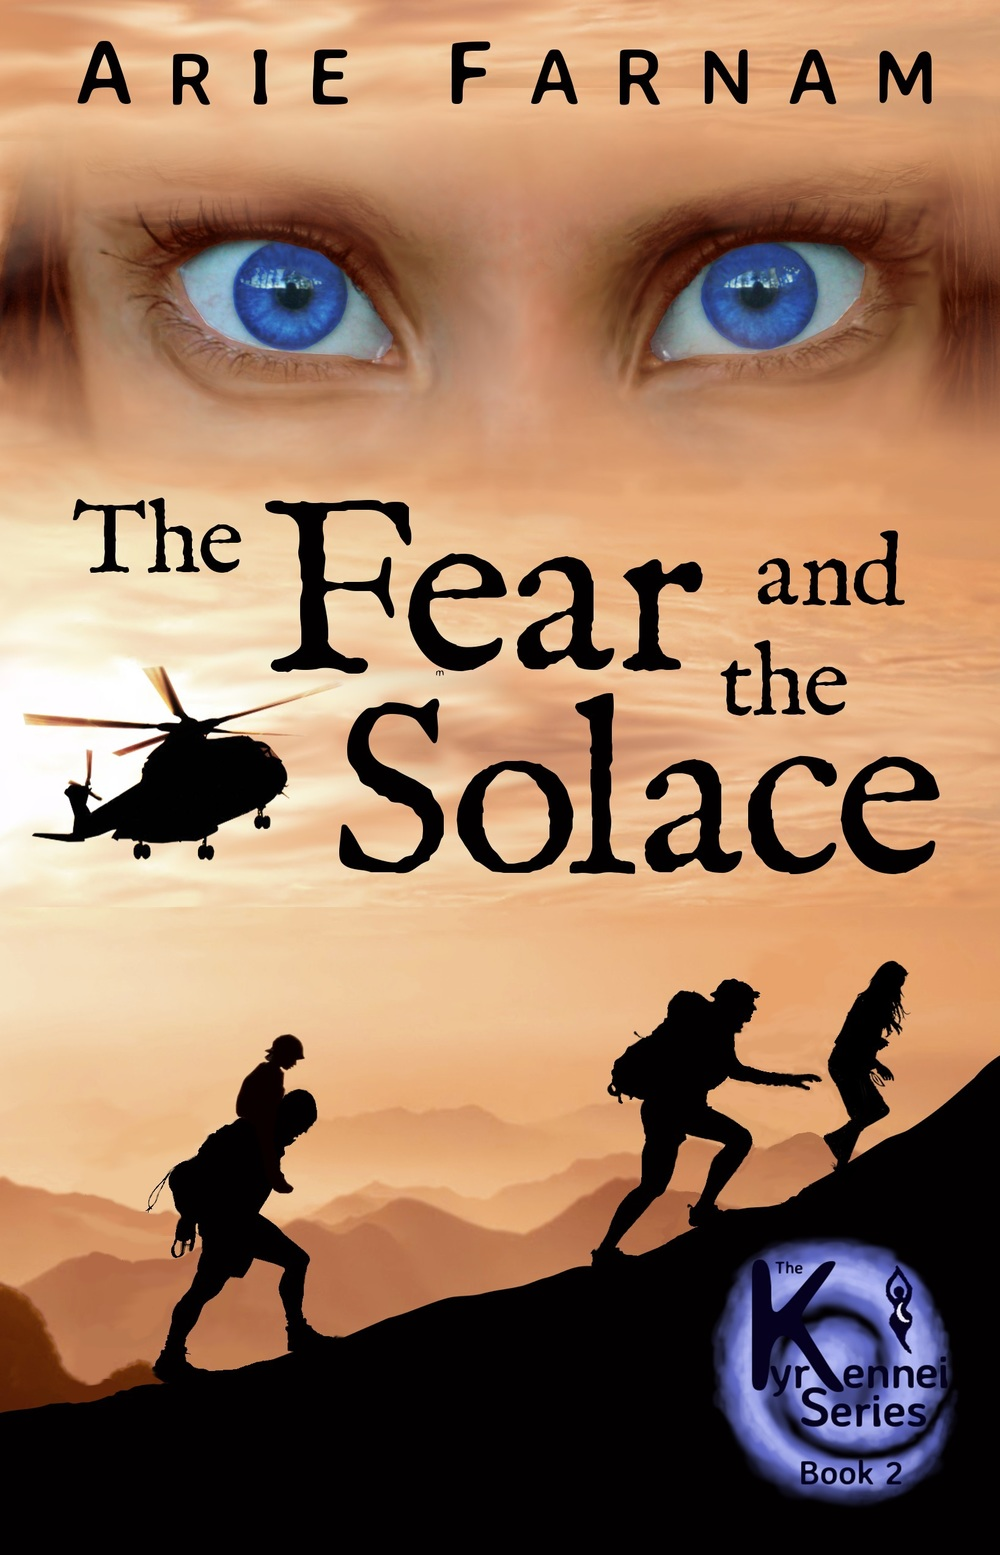 New books by the hearth arie farnam the fear and the solace the kyrennei series book two is on amazon fandeluxe Images